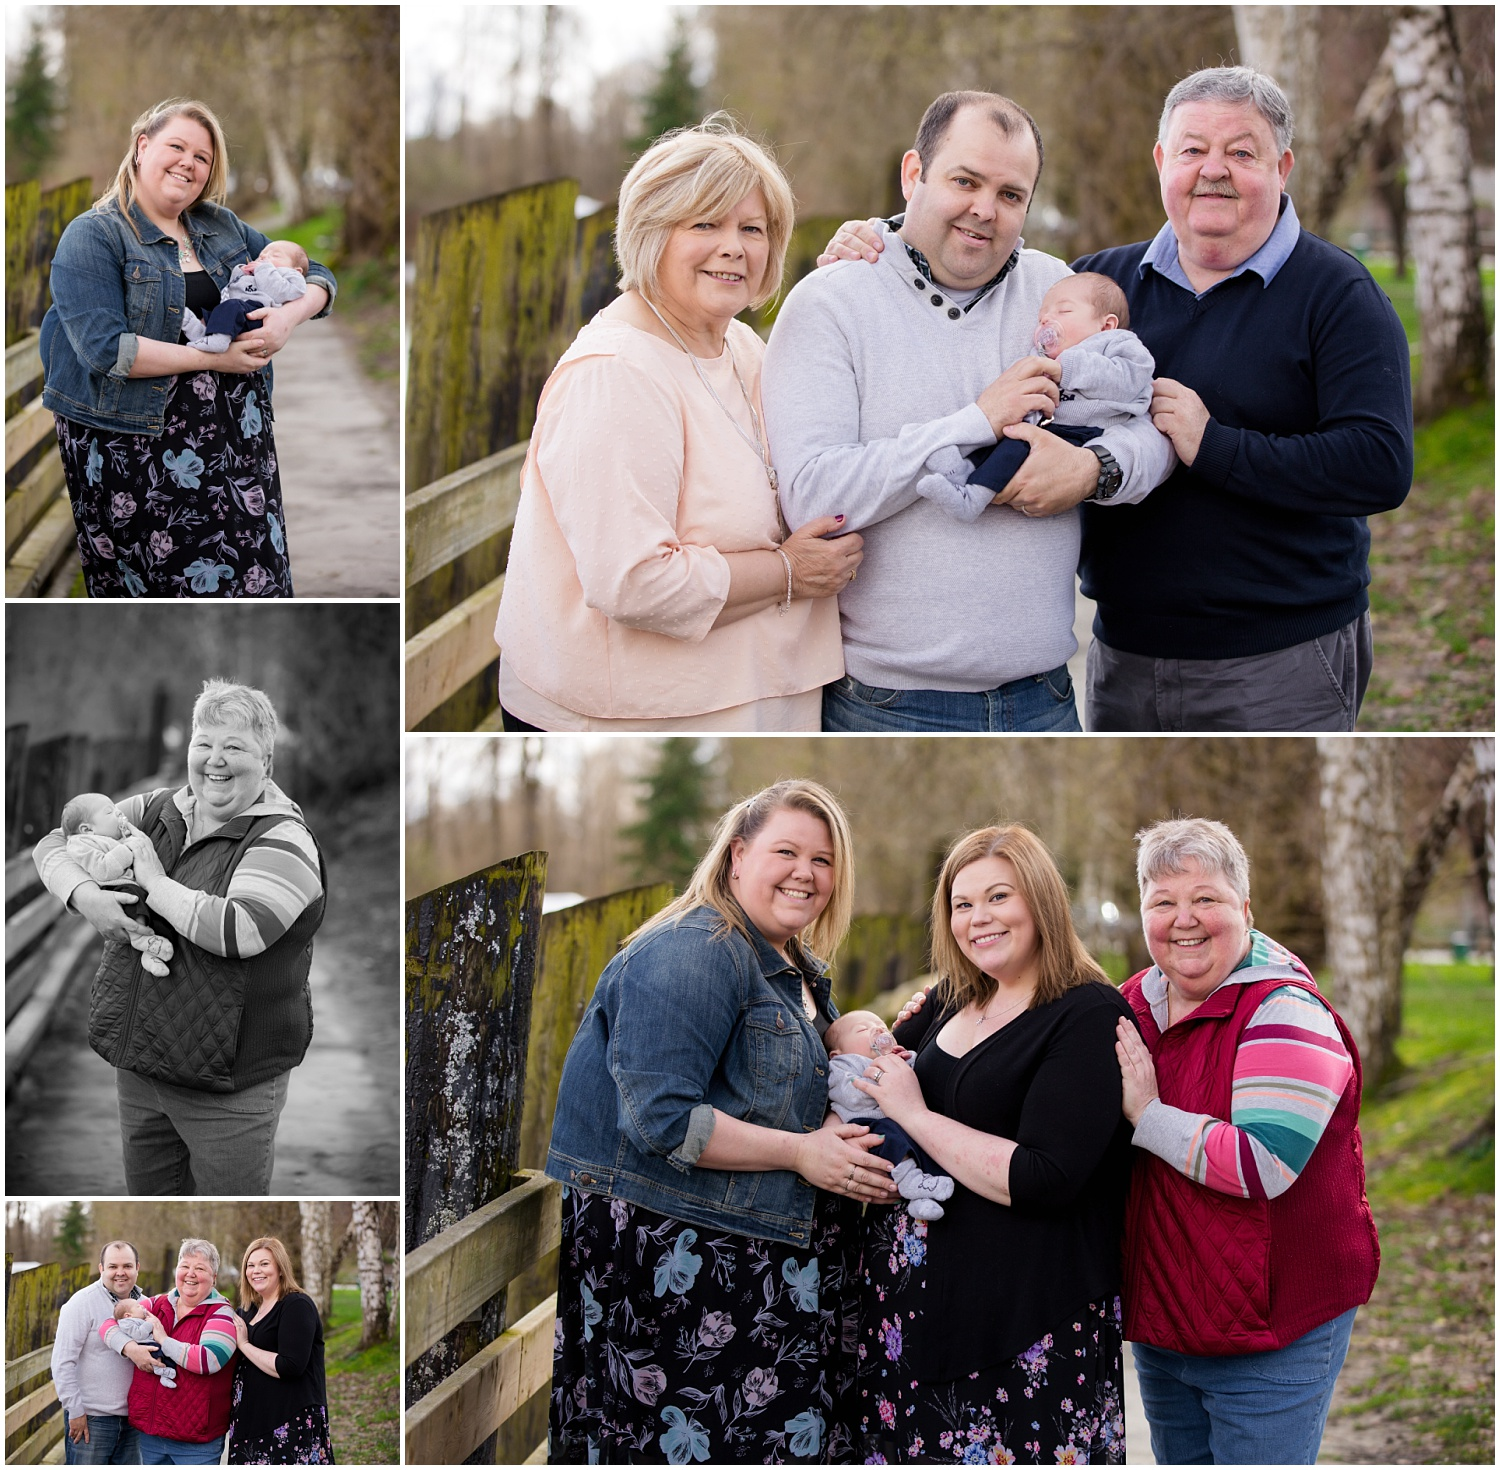 Amazing Day Photography - Fort Langley Family Session - Langley Family Photographer (8).jpg